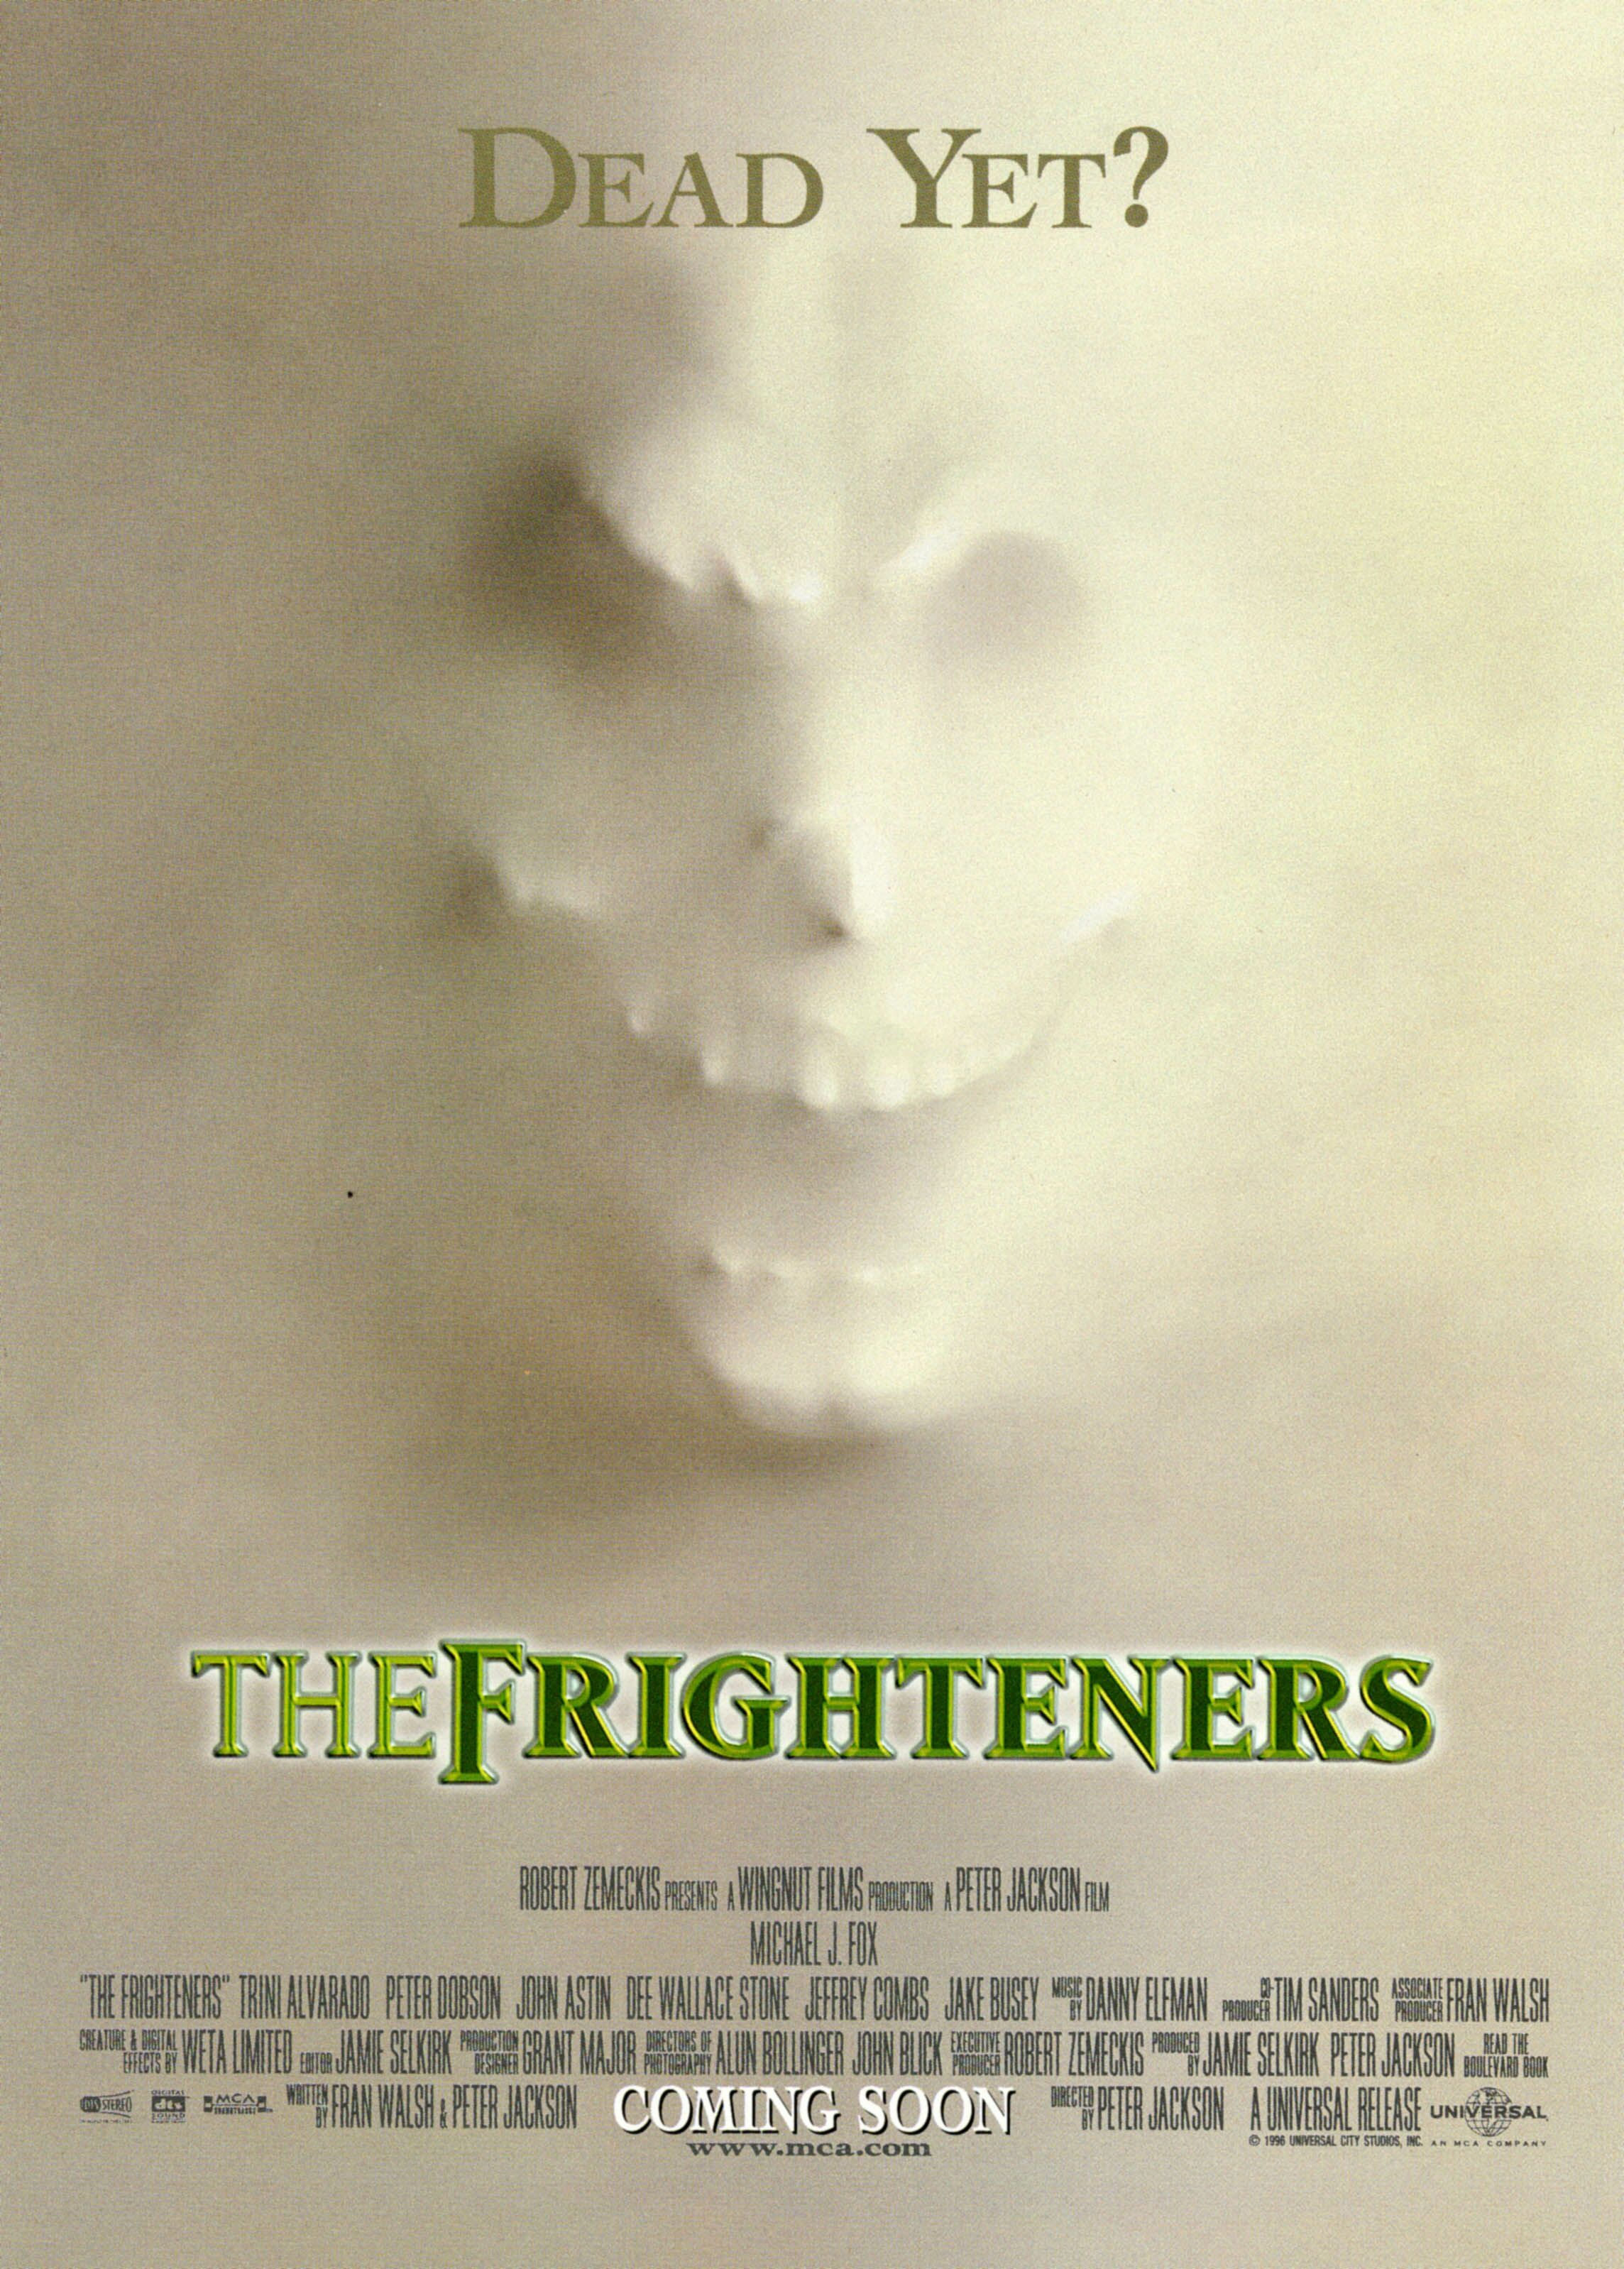 The Frighteners (1996) Timeless classic and one of my